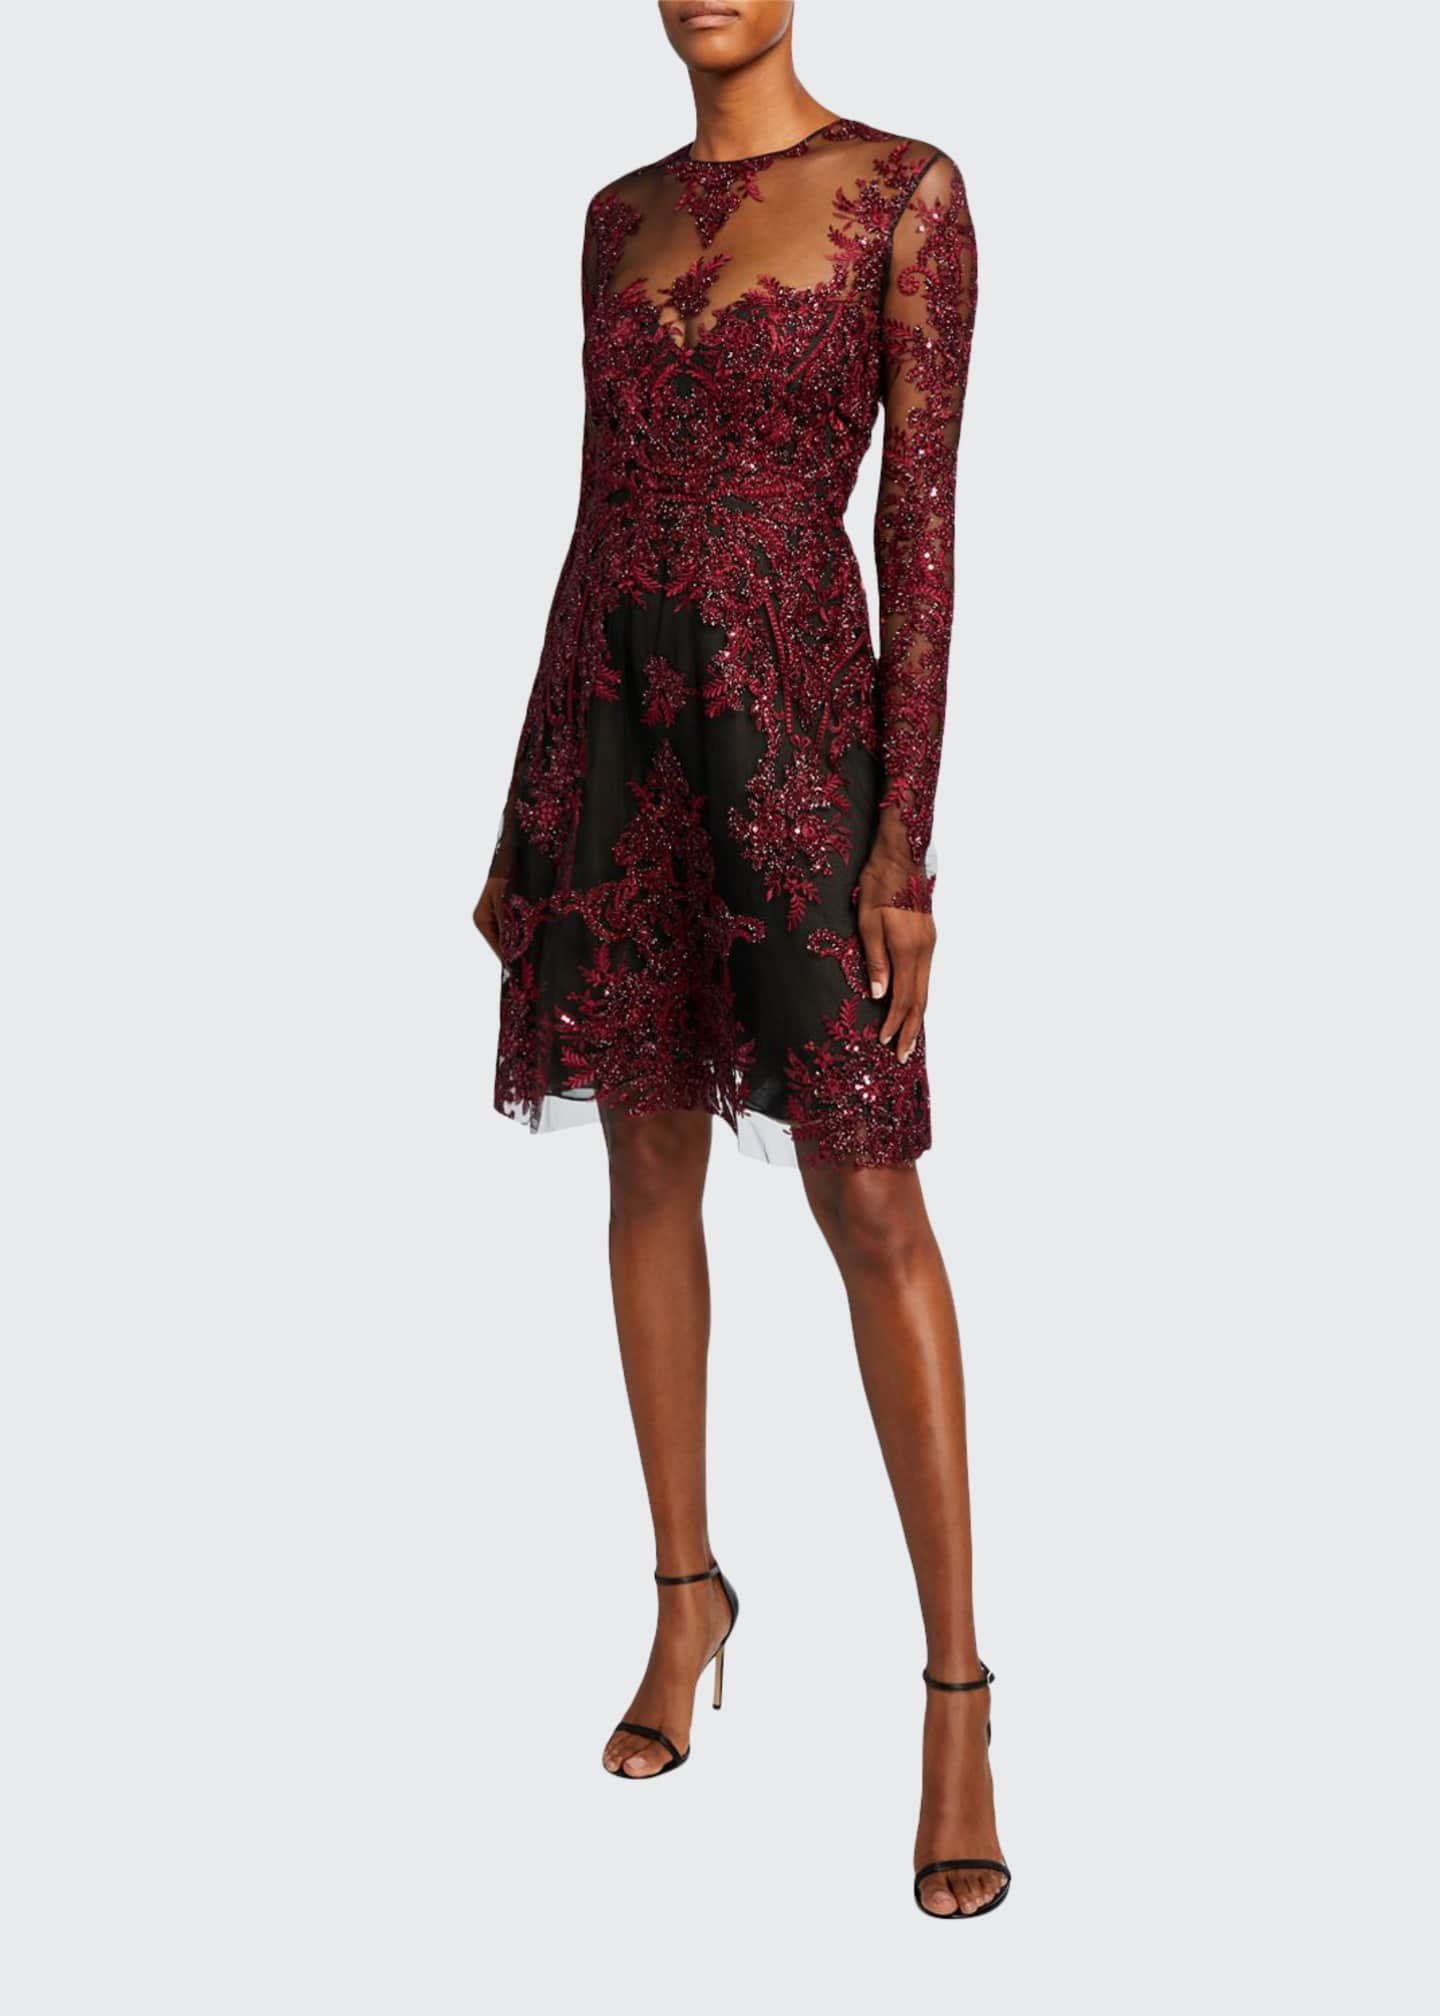 Naeem Khan Embroidered Illusion Cocktail Dress